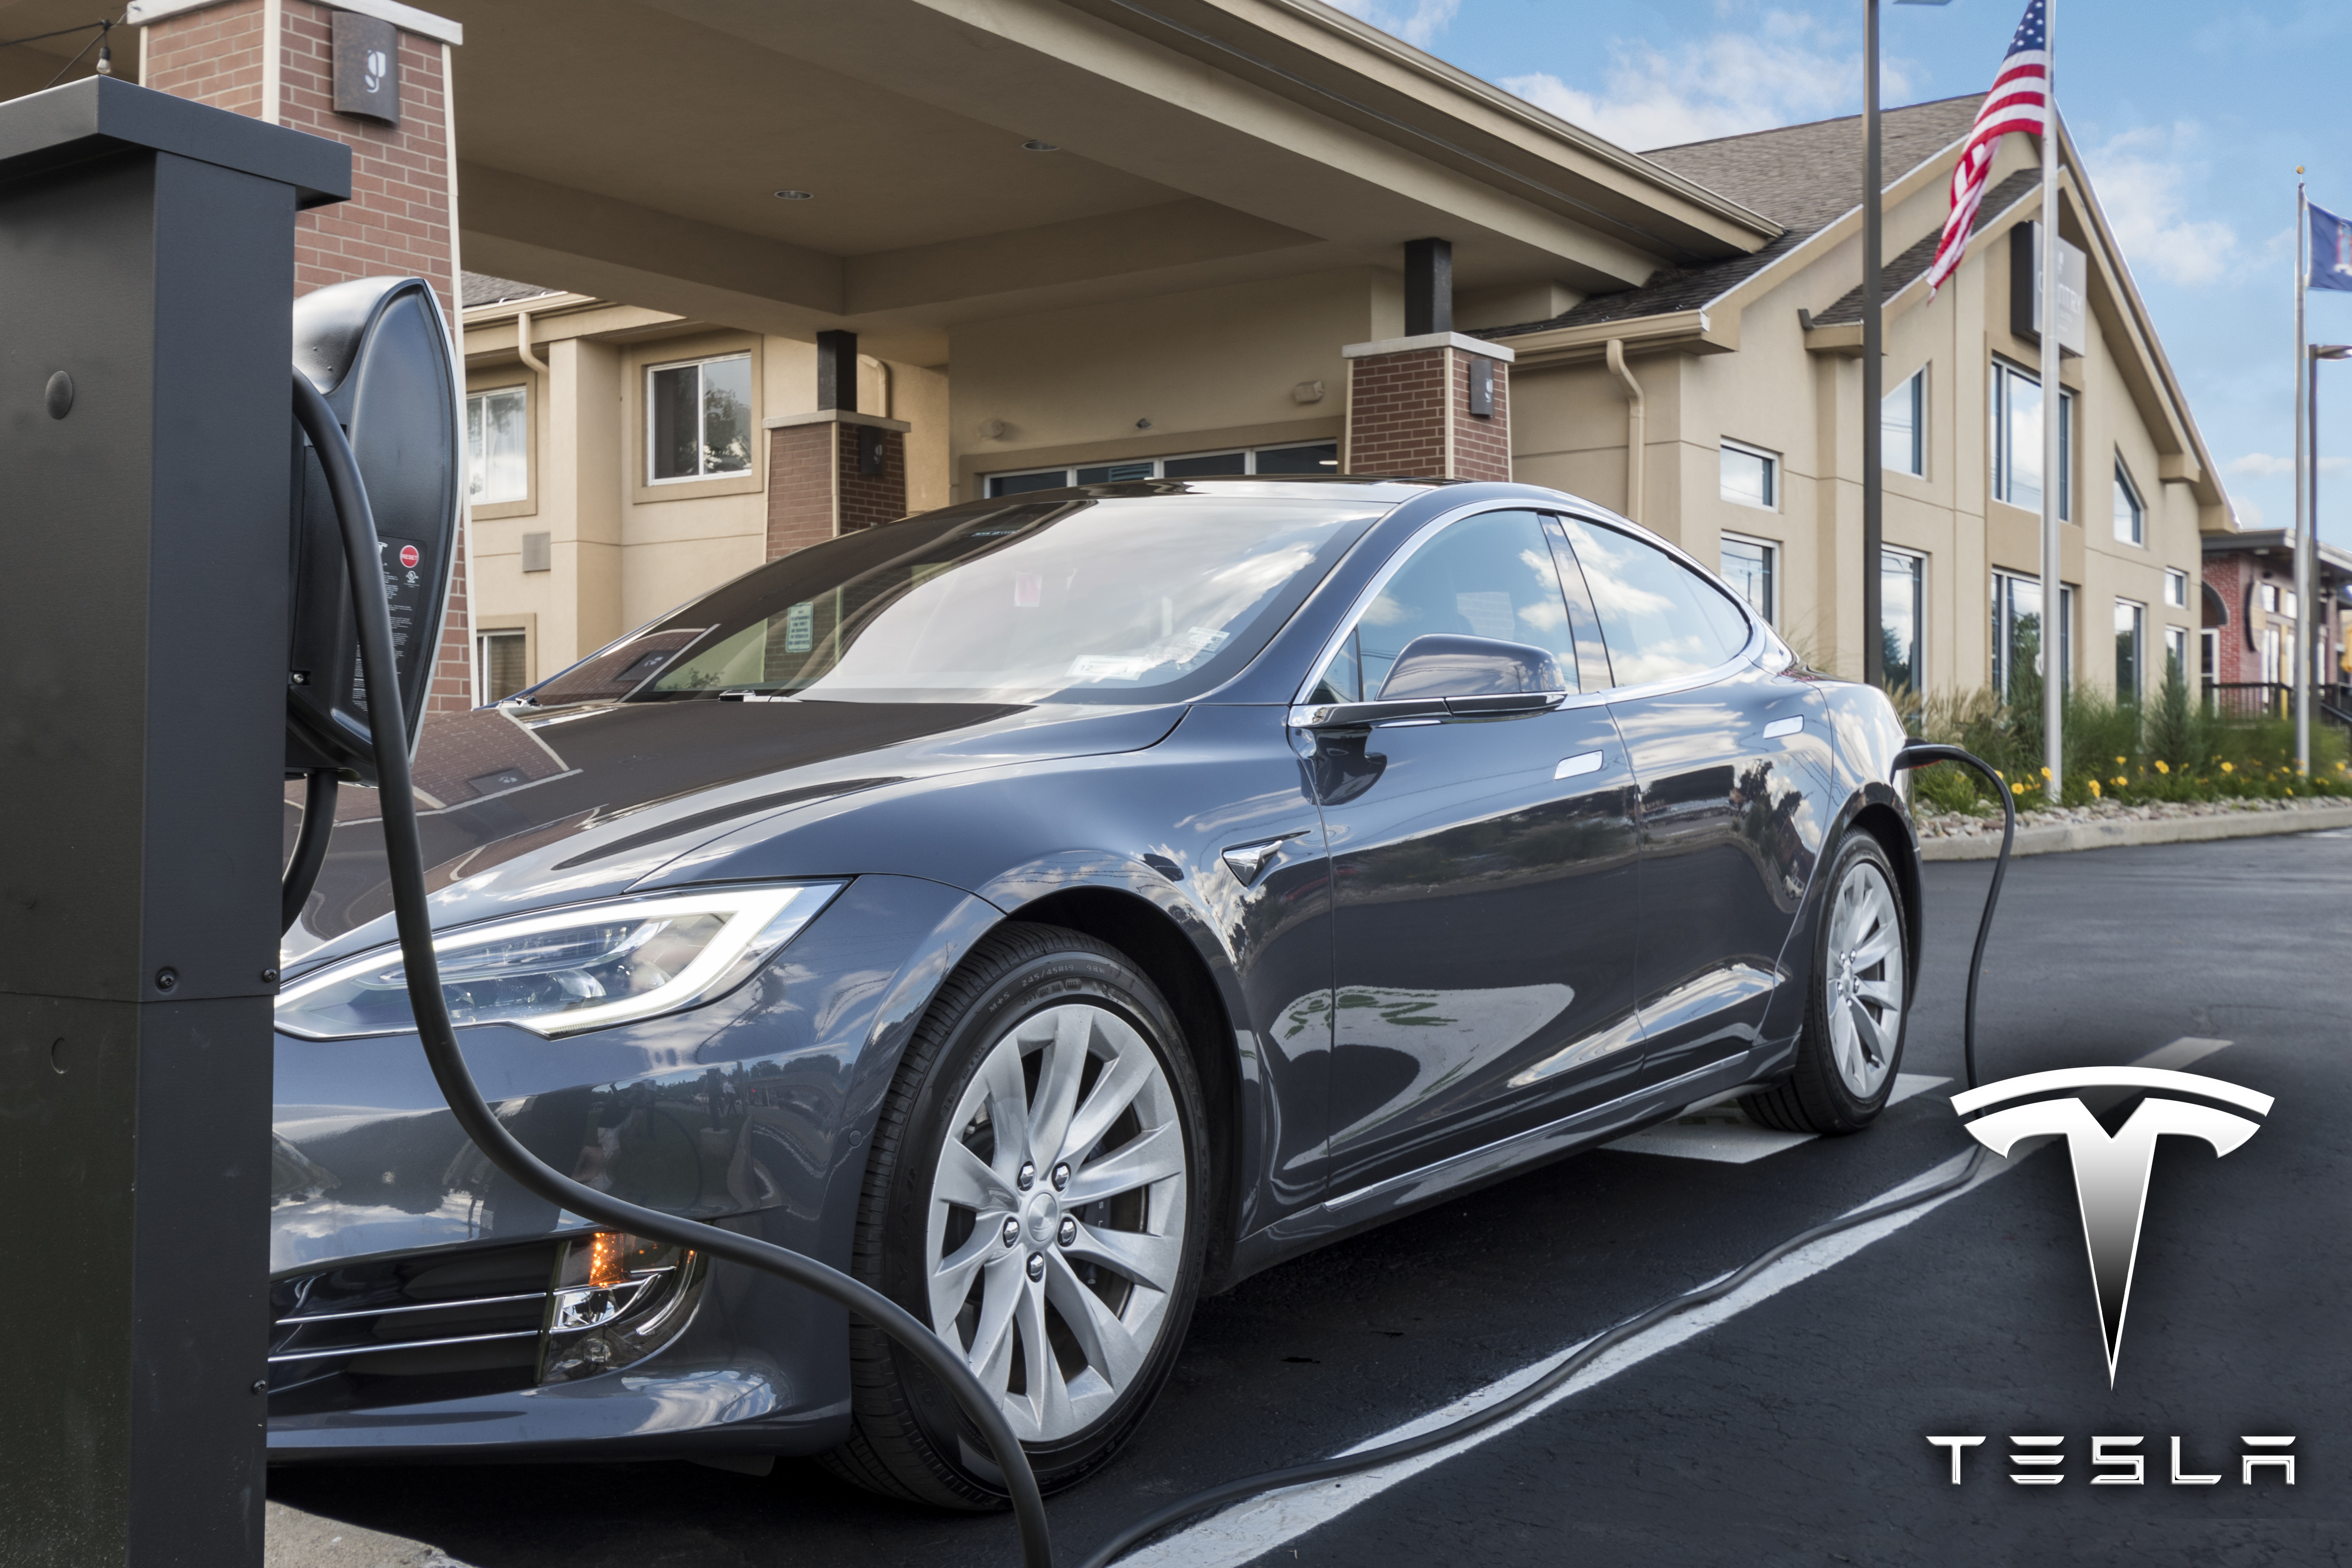 Tesla Charger Plugged in high res